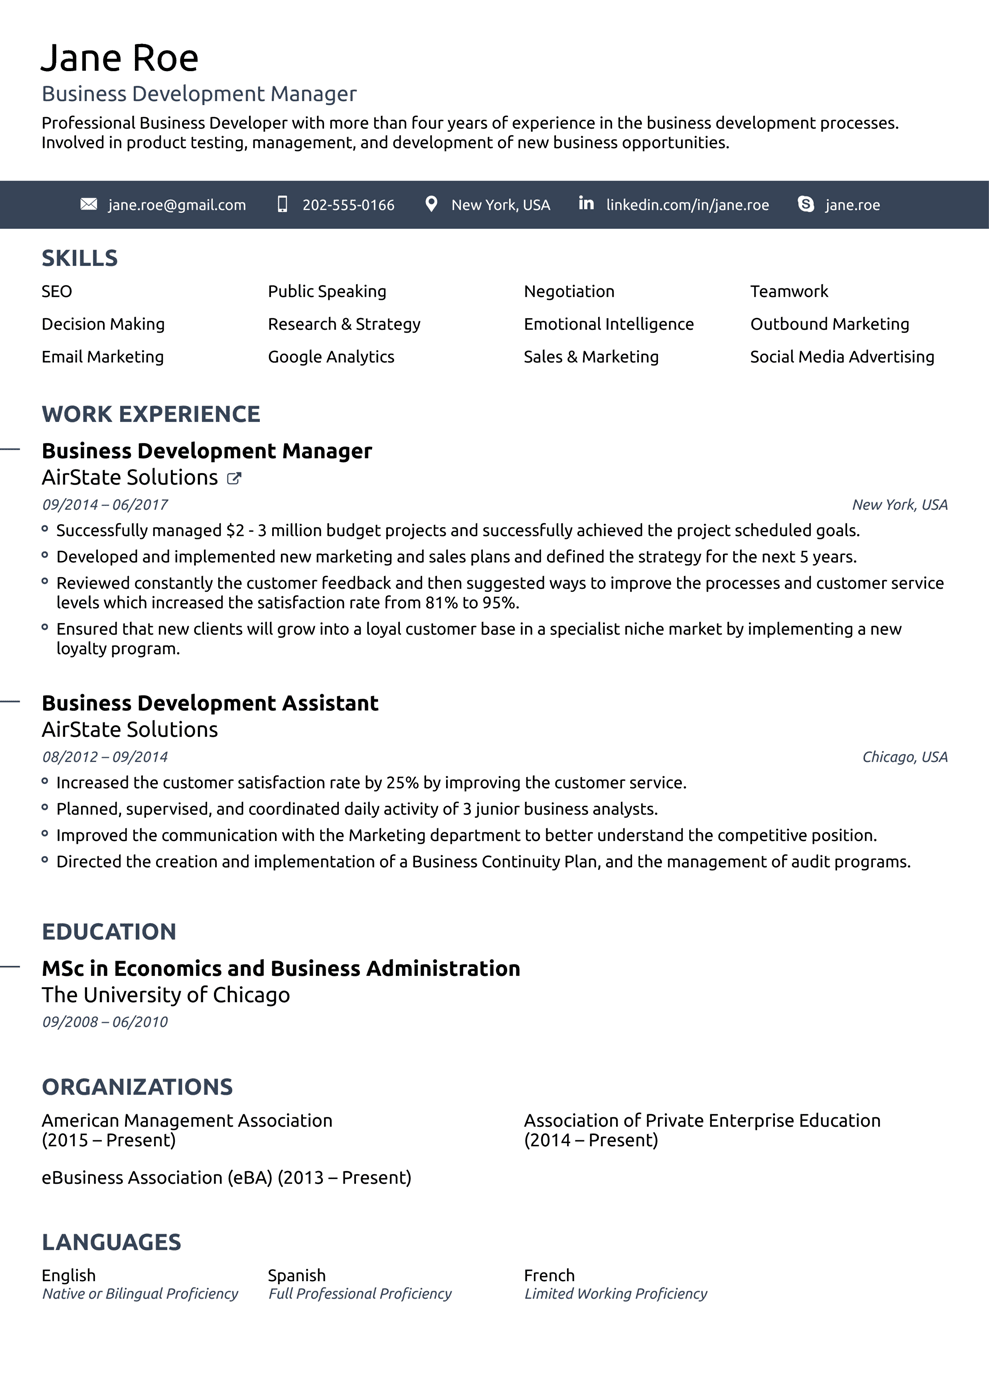 Resume Templ | Free Resume Templates For 2019 Download Now